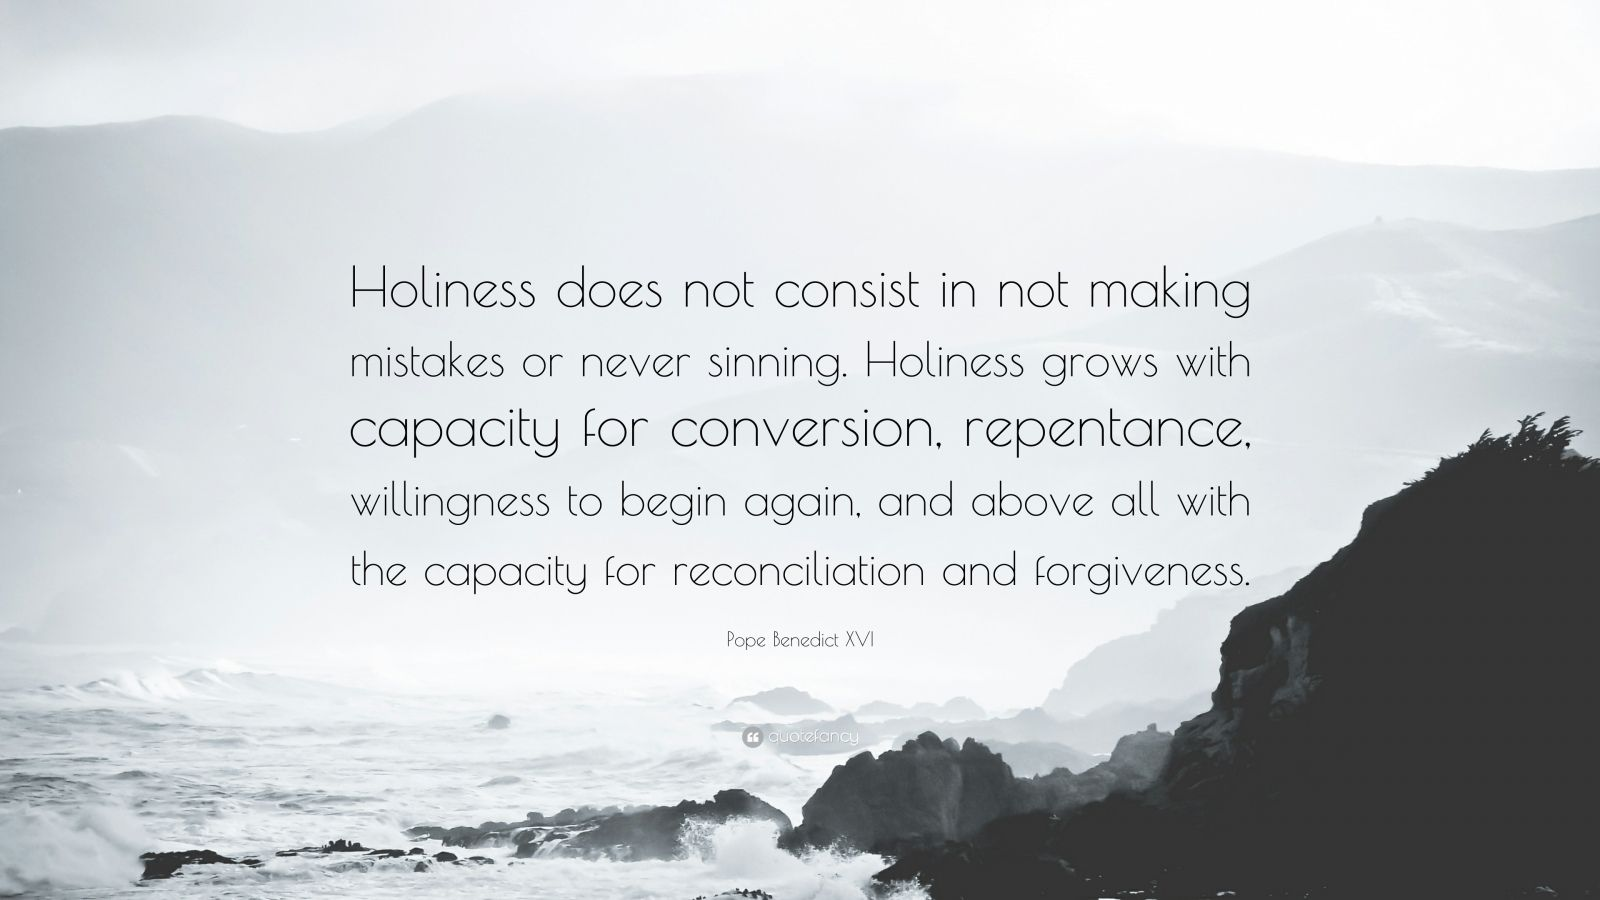 """Pope Benedict XVI Quote: """"Holiness does not consist in not making mistakes or never sinning. Holiness grows with capacity for conversion, repentance, willingness to begin again, and above all with the capacity for reconciliation and forgiveness."""""""